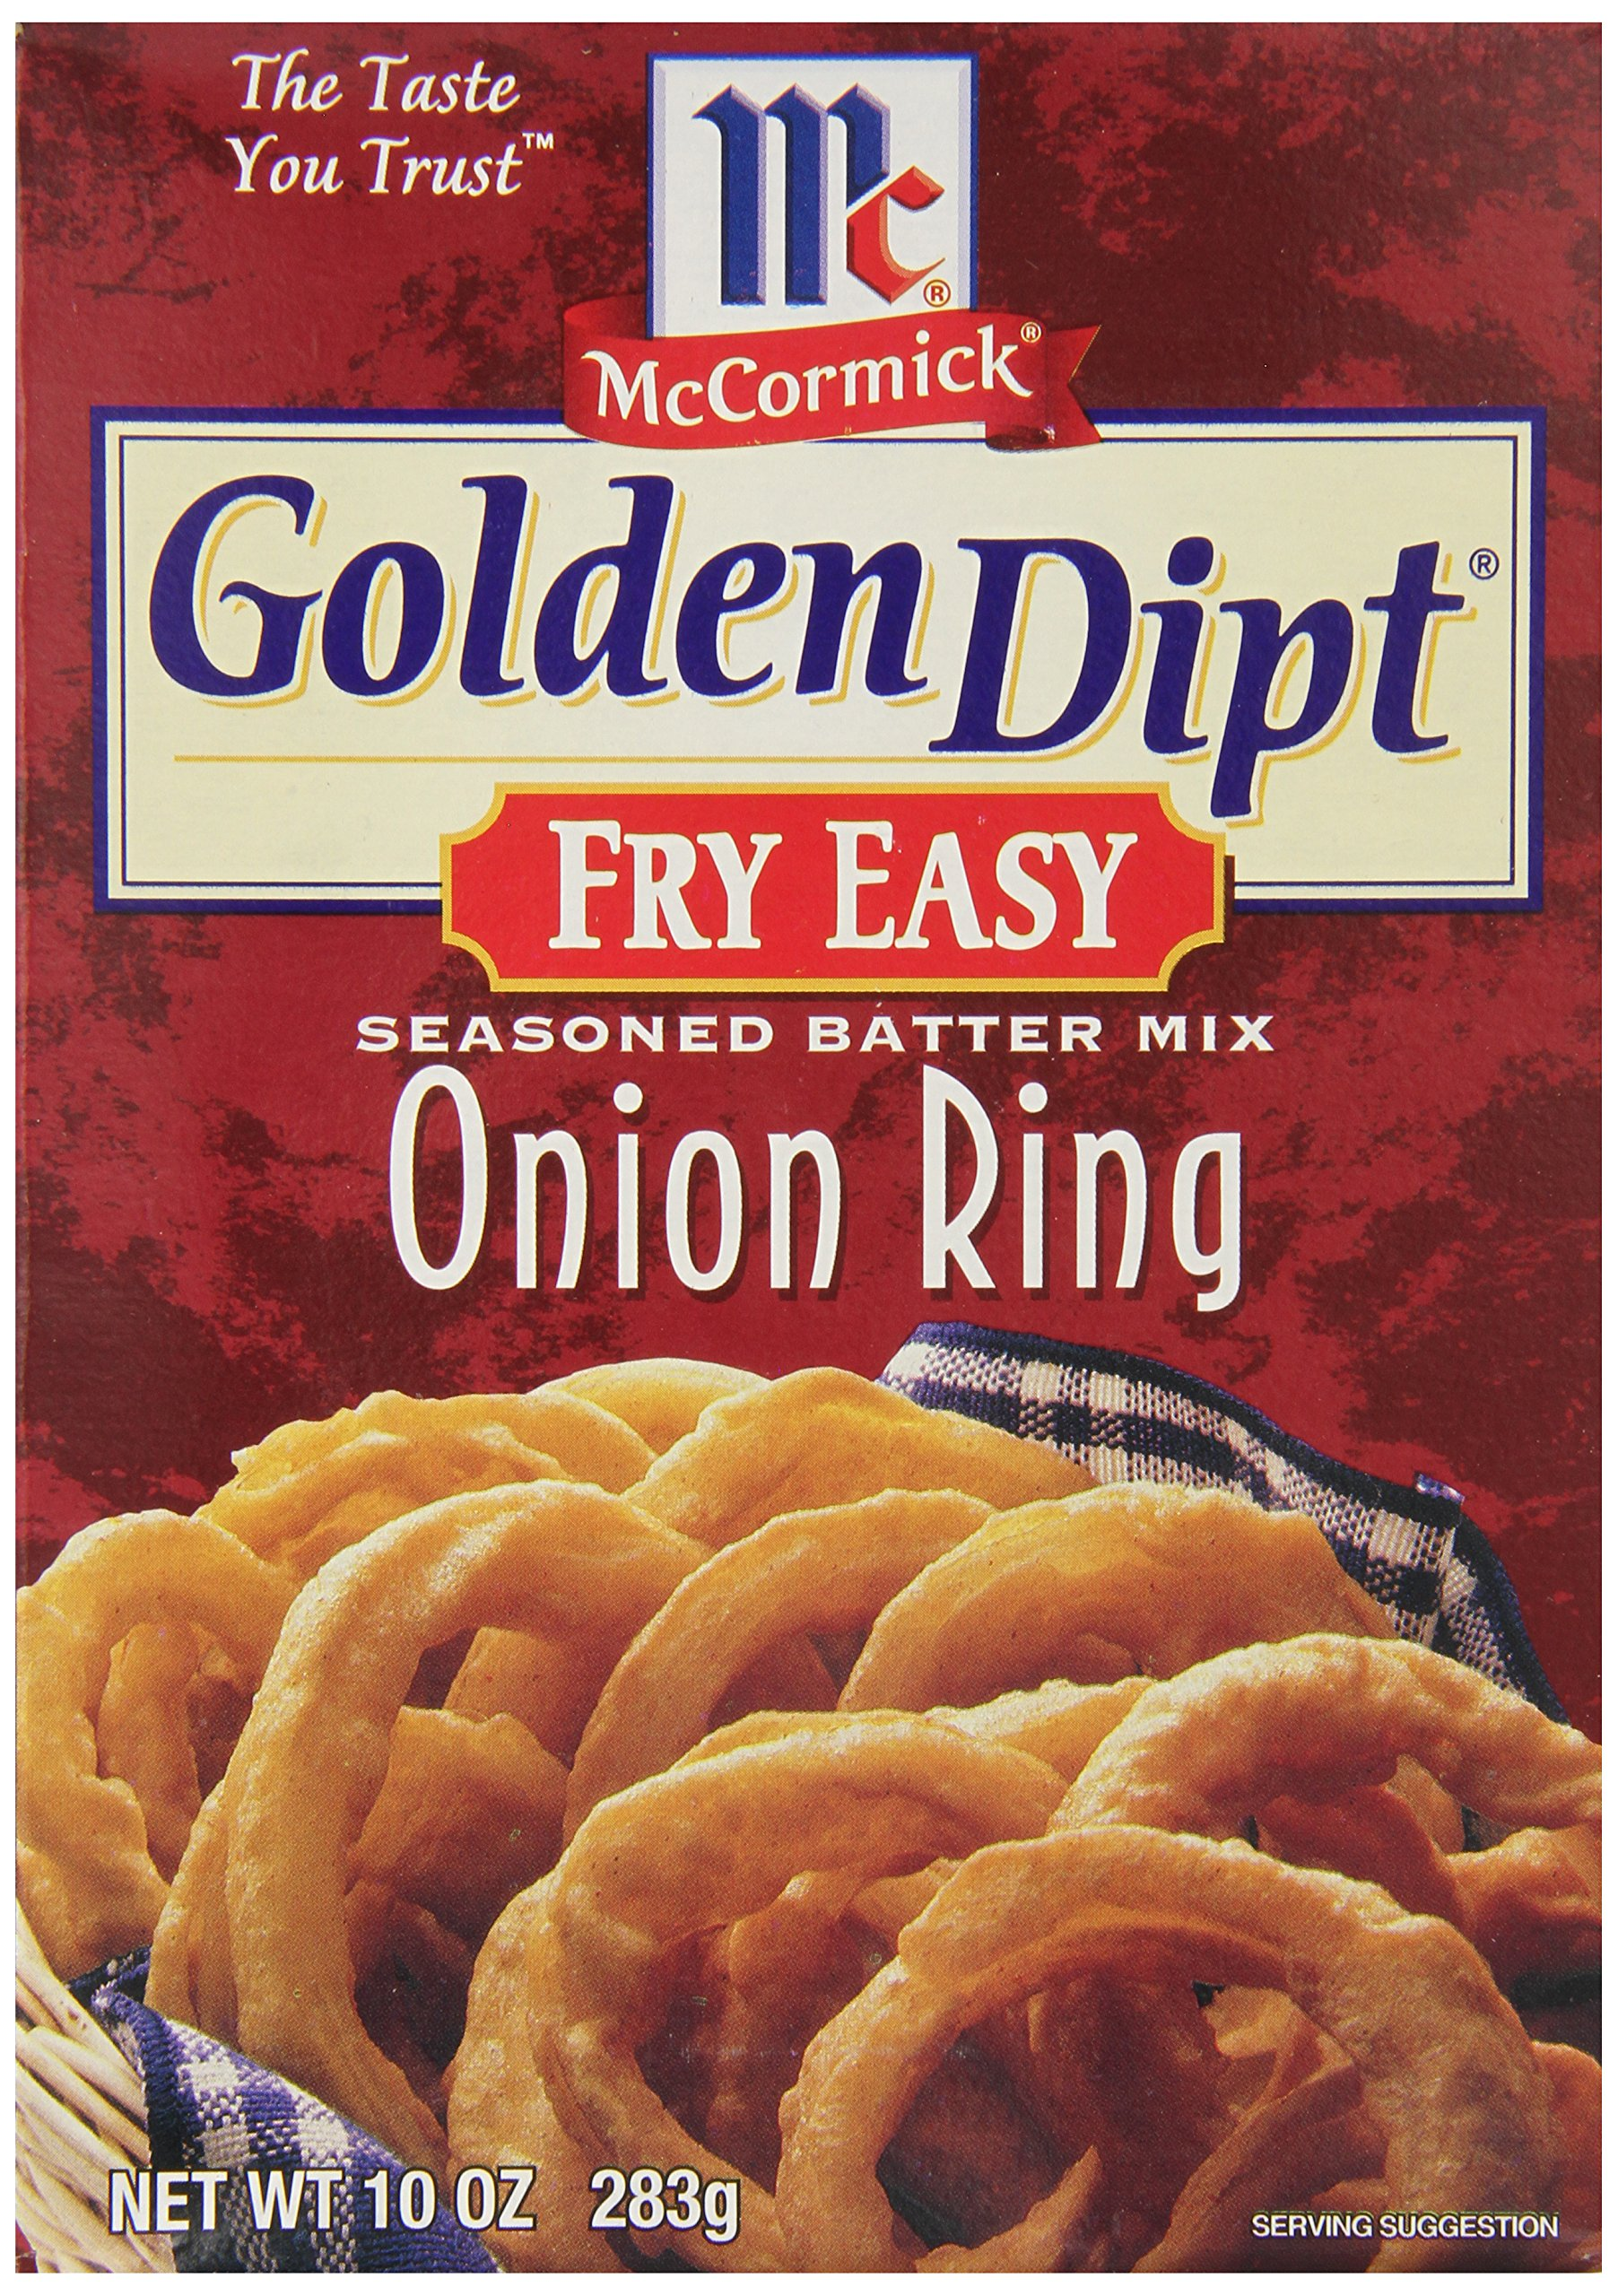 McCormick Golden Dipt Fry Easy Seasoned Batter Mix, Onion Ring, 10-Ounce Unit (Pack of 12)